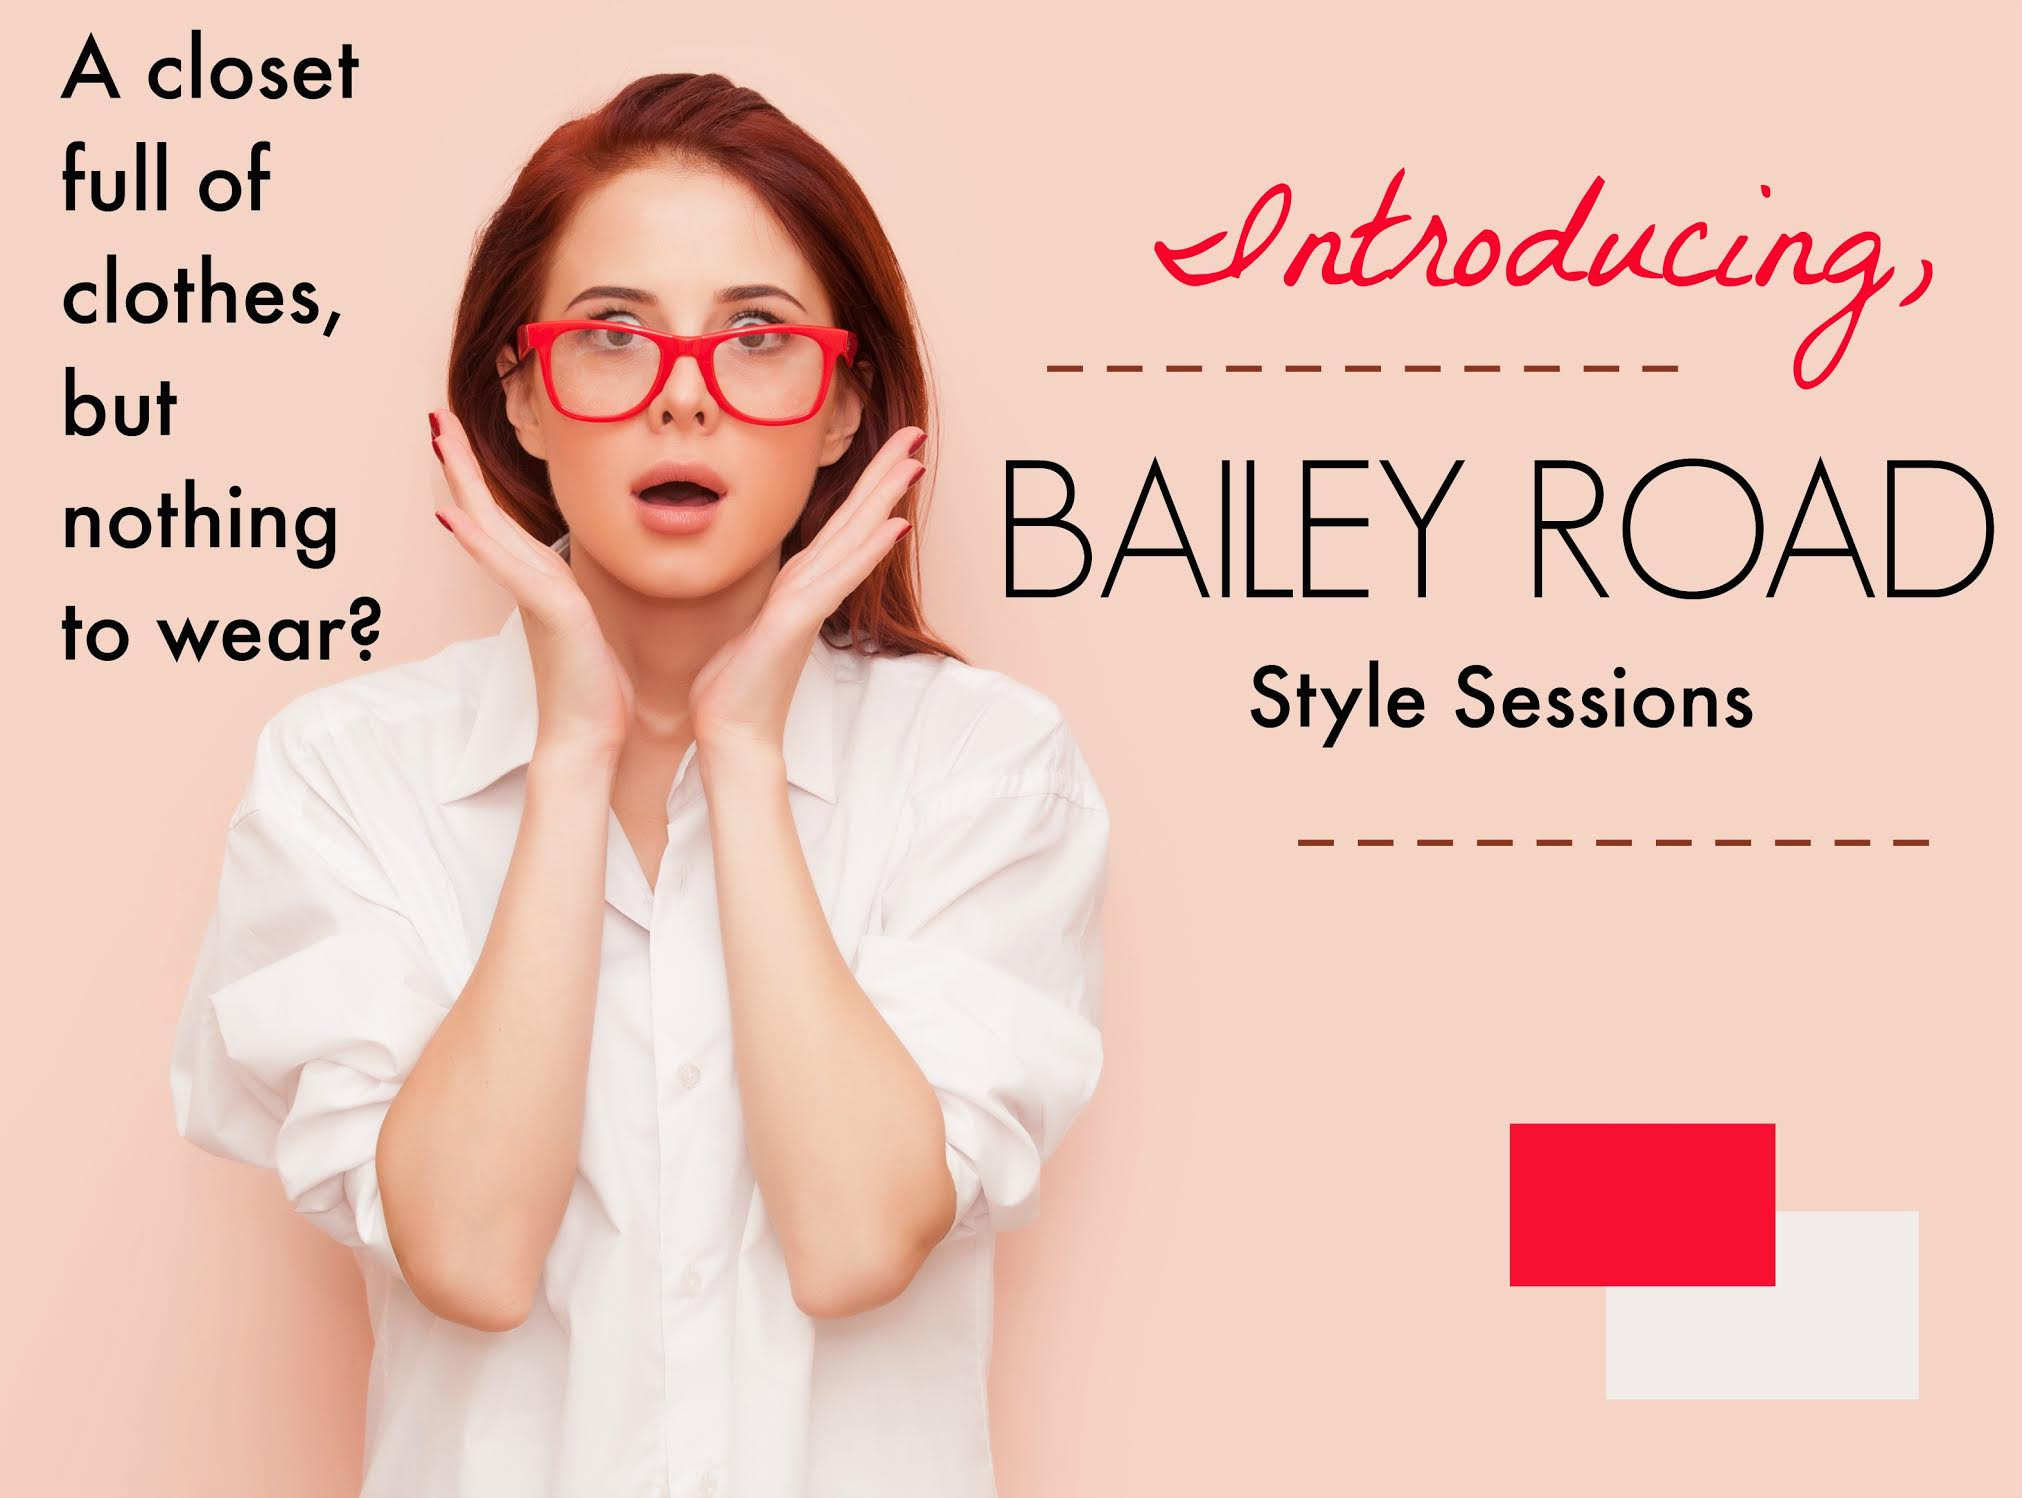 Style Session branding